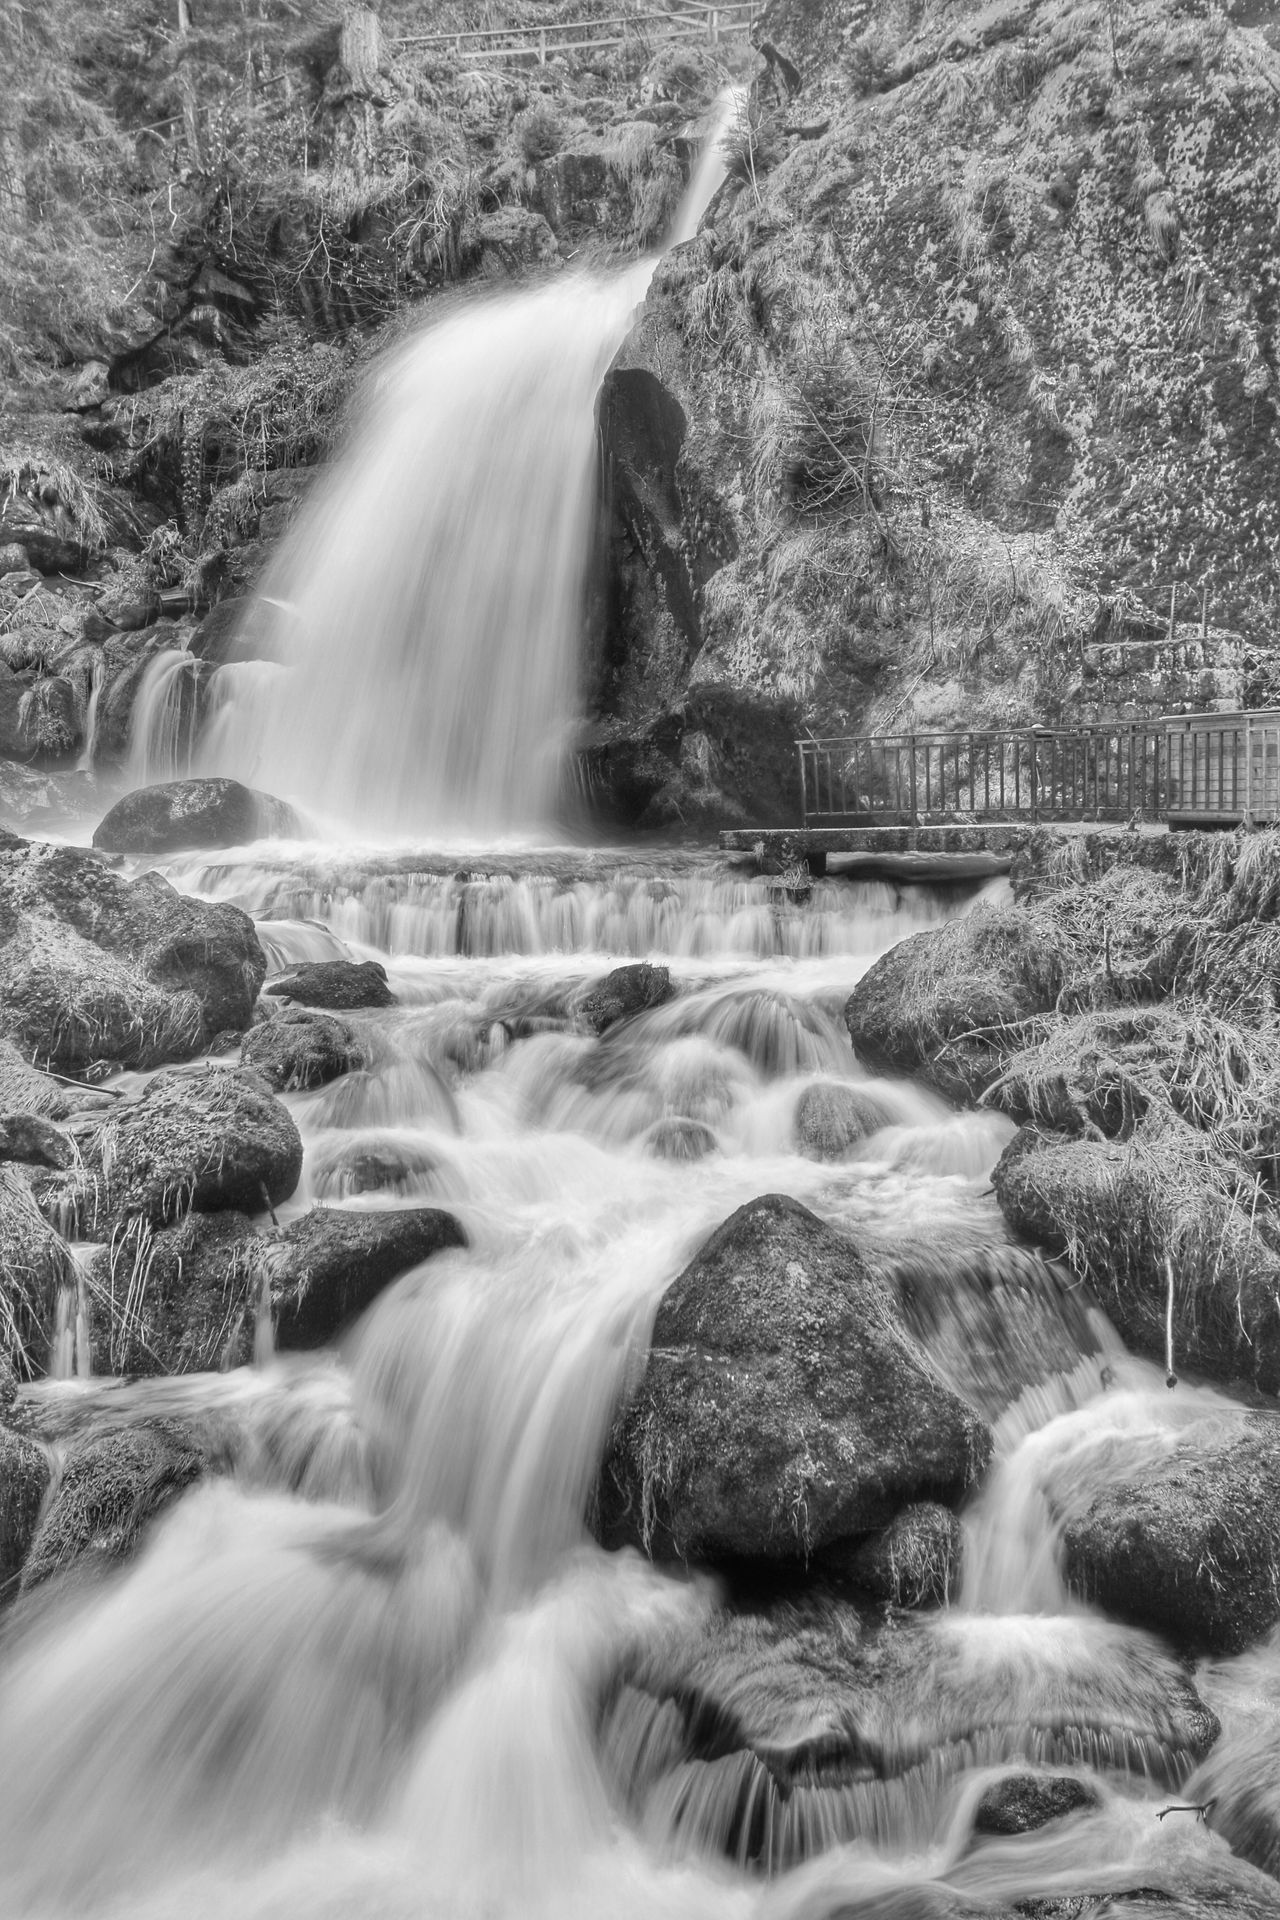 """The Sound of Water"" Waterfall Water Motion Scenics Blurred Motion Long Exposure Nature Beauty In Nature Flowing Water Rock - Object Idyllic Outdoors Tree Day One Person Power In Nature Monochrome Monochrome Photography Blackandwhite Black And White Landscape Michael Hruschka Wasserfall Langzeitbelichtung Wasser"